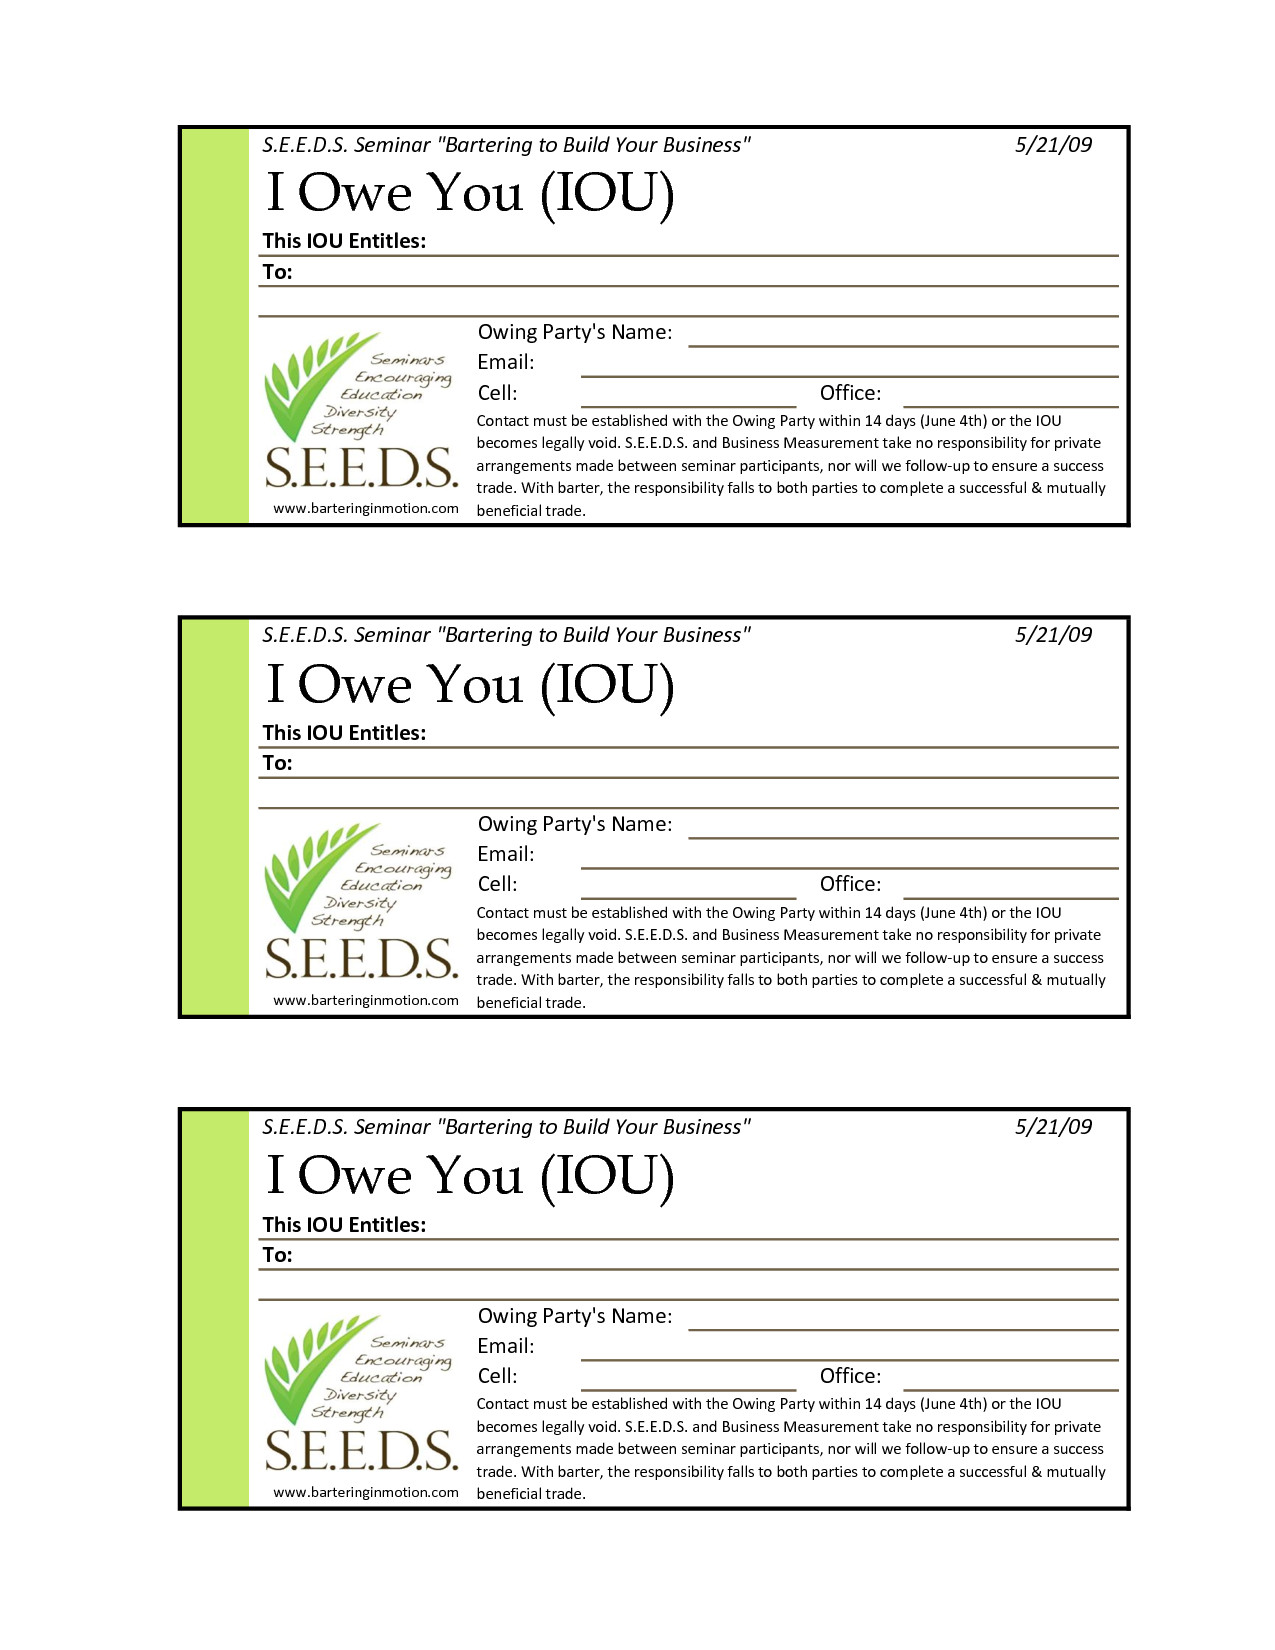 I Owe You Template Iou Template Free Printable Documents